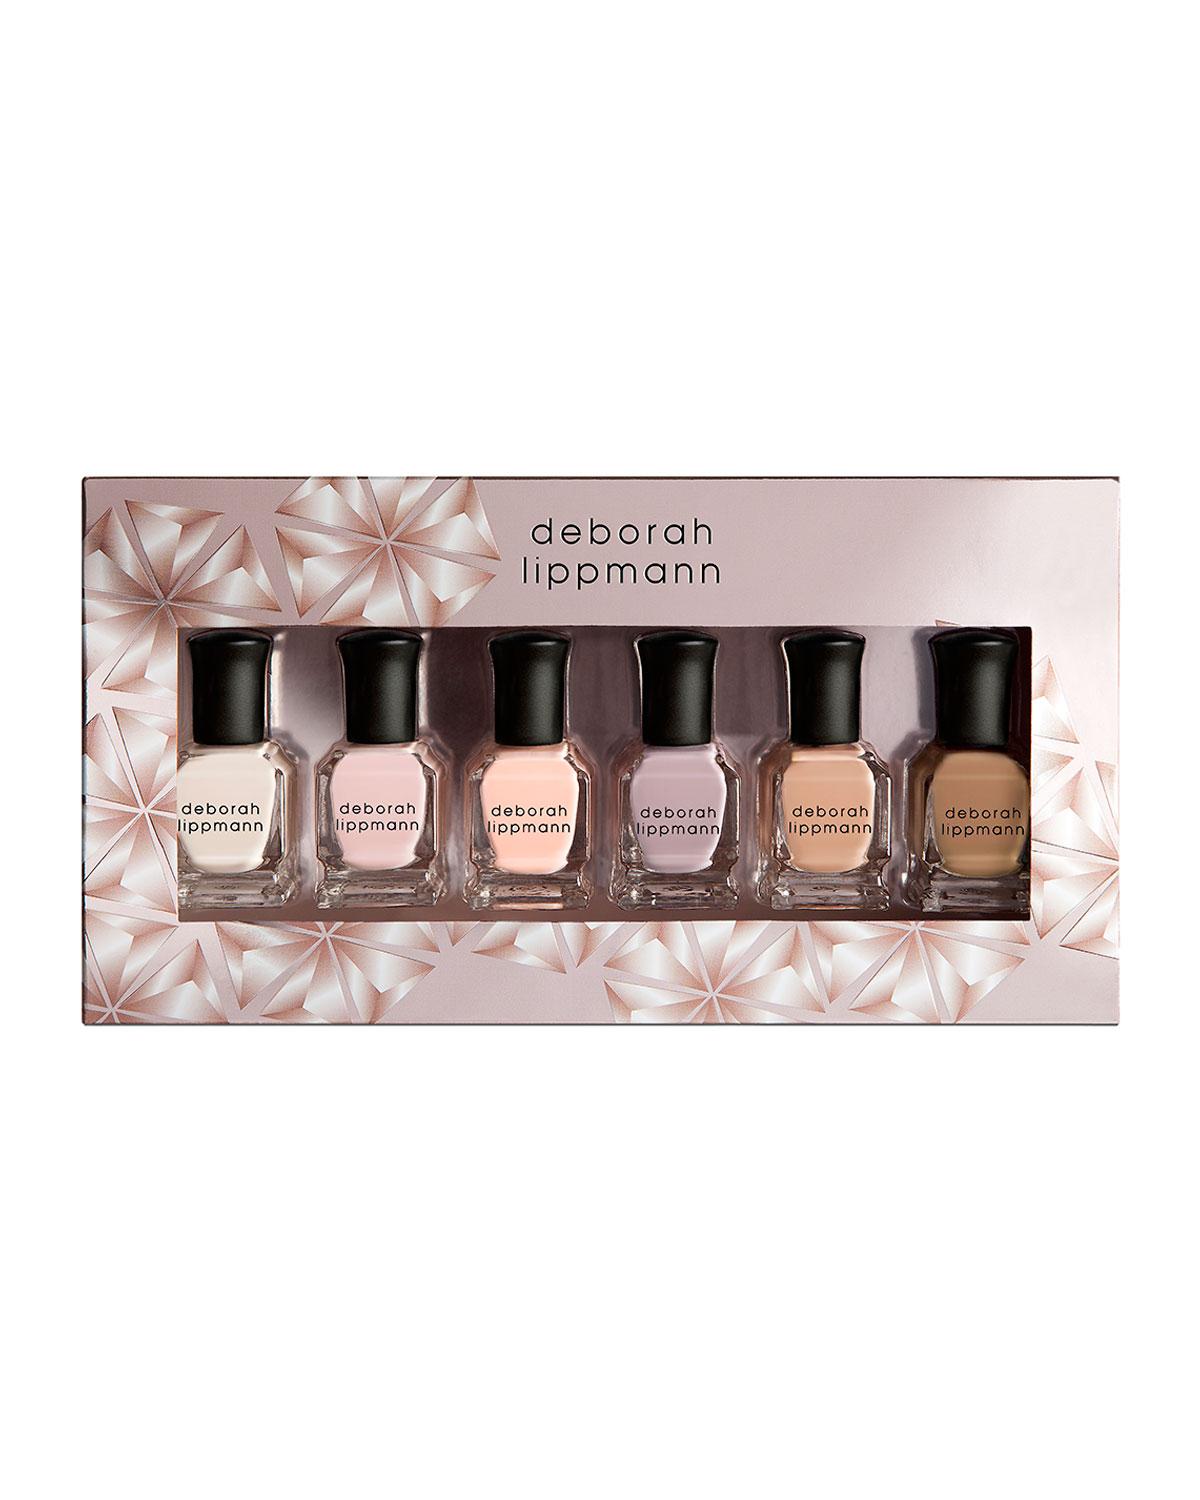 Deborah Lippmann UNDRESSED 6-PIECE NUDE NAIL POLISH SET, 8 ML EACH ($72 VALUE)